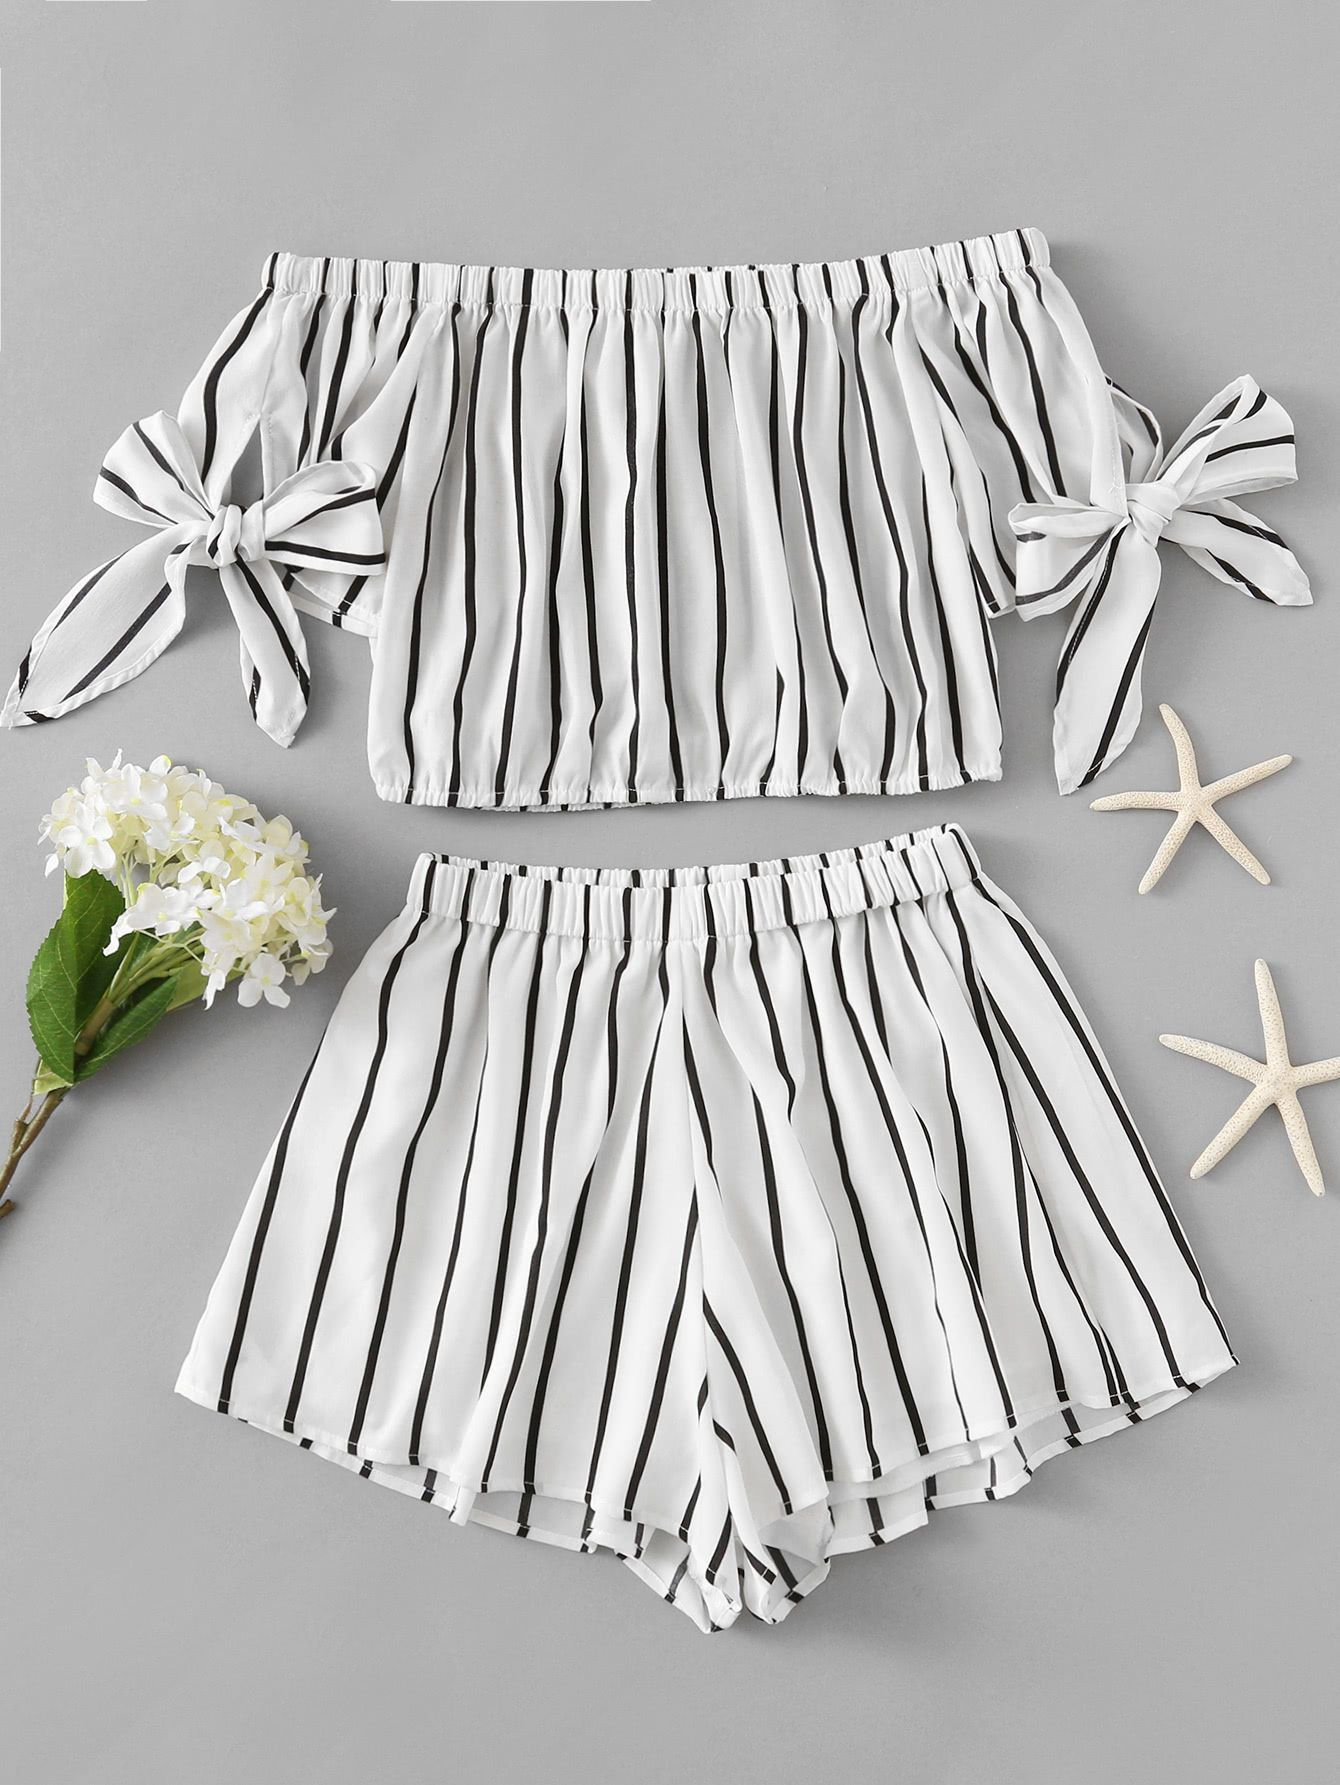 23b0763b6e703 Bardot Striped Bow Tie Sleeve Crop Top With Shorts in 2019 | Clothes ...